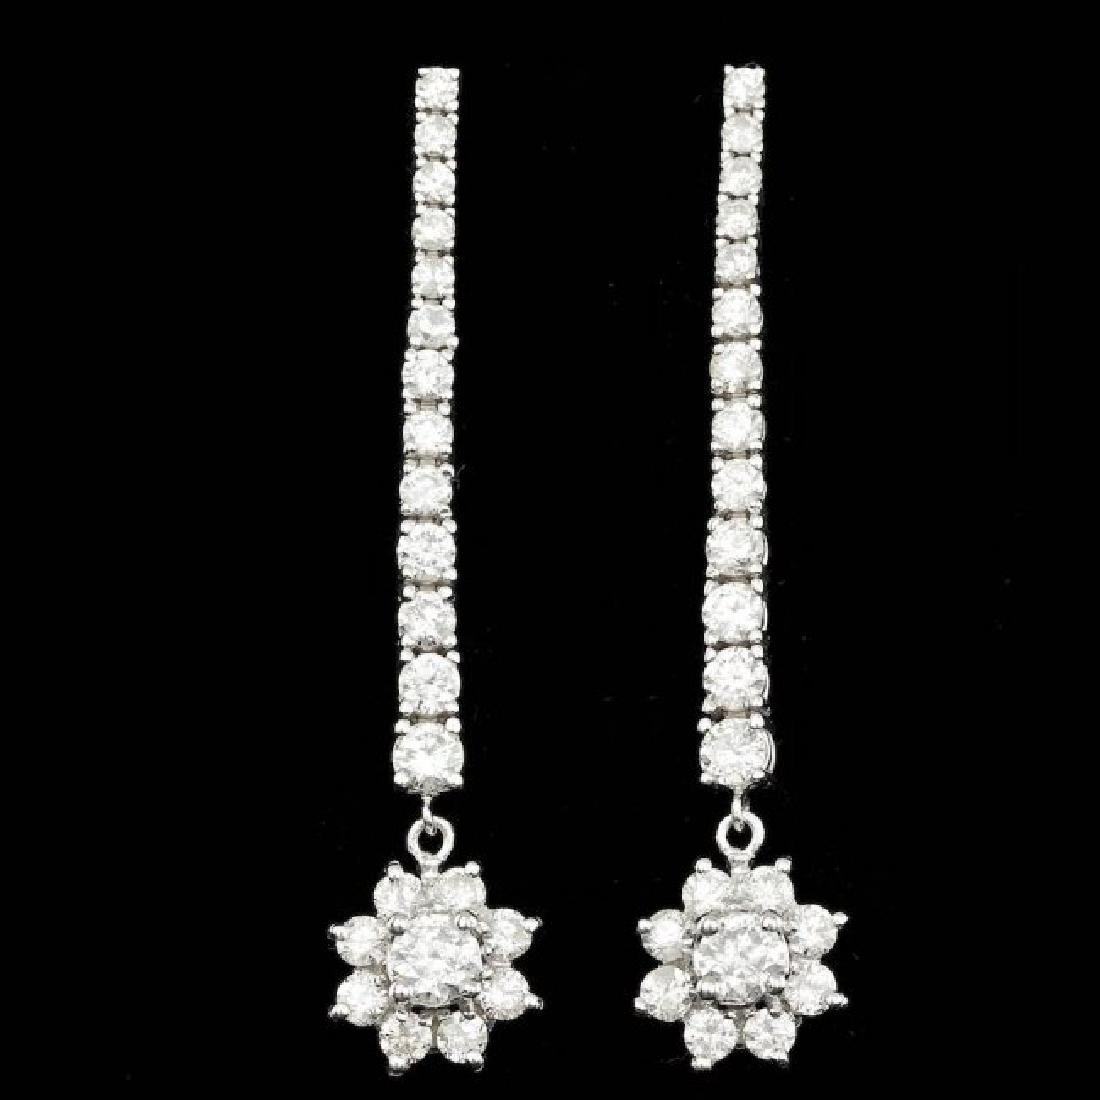 14k White Gold 3.65ct Diamond Earrings